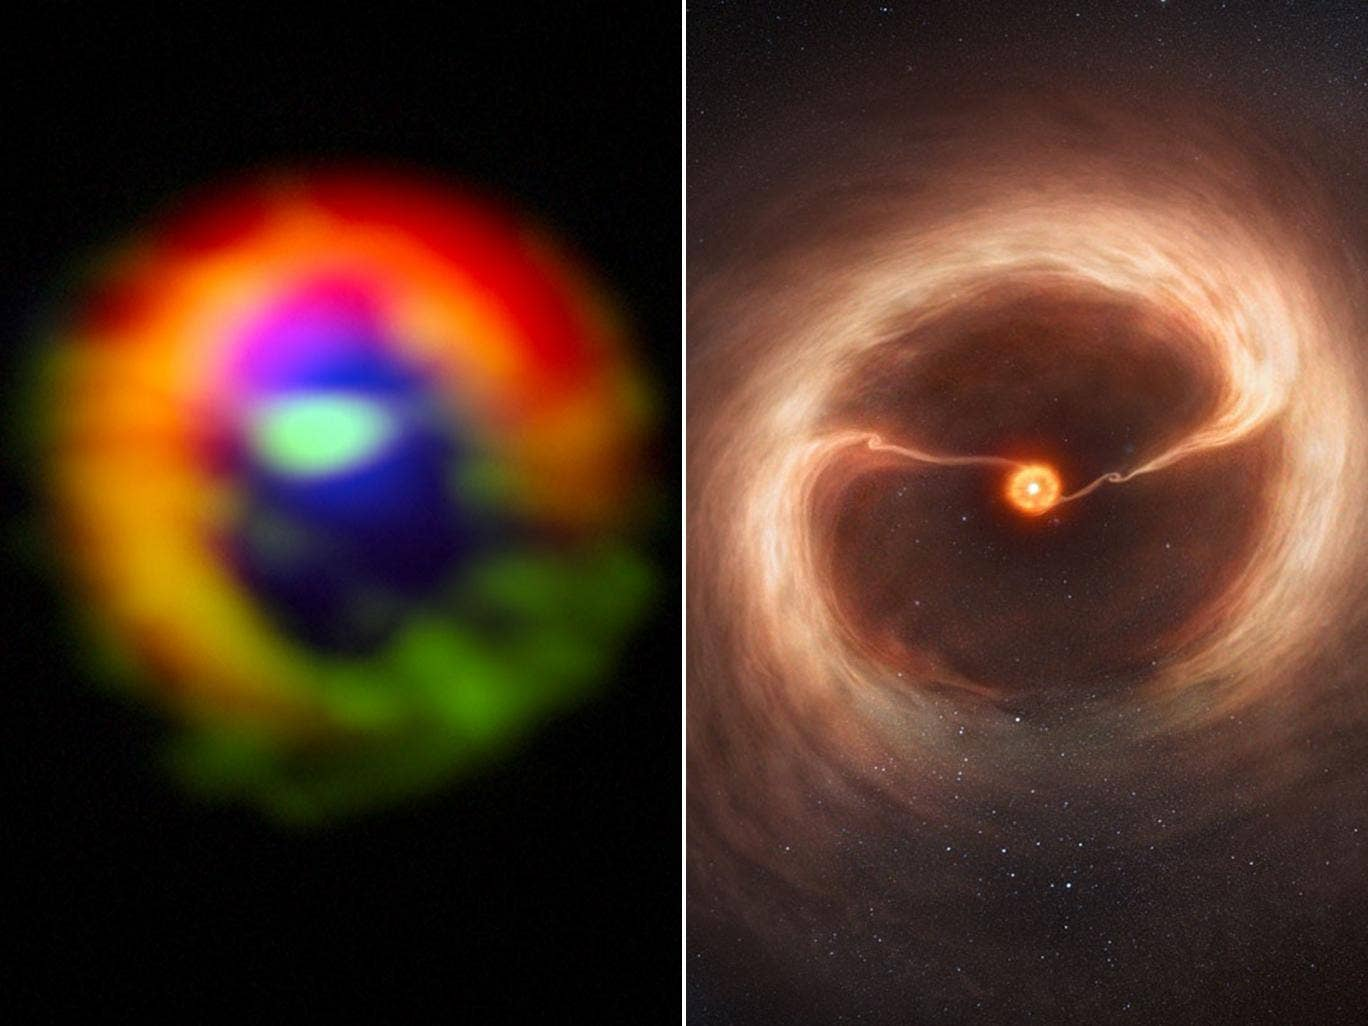 Observations (left) made with the Atacama Large Millimeter/submillimeter Array (ALMA) telescope of the young star HD 142527. The dust in the outer disc is shown in red. Dense gas in the streams flowing across the gap, as well as in the outer disc, is show